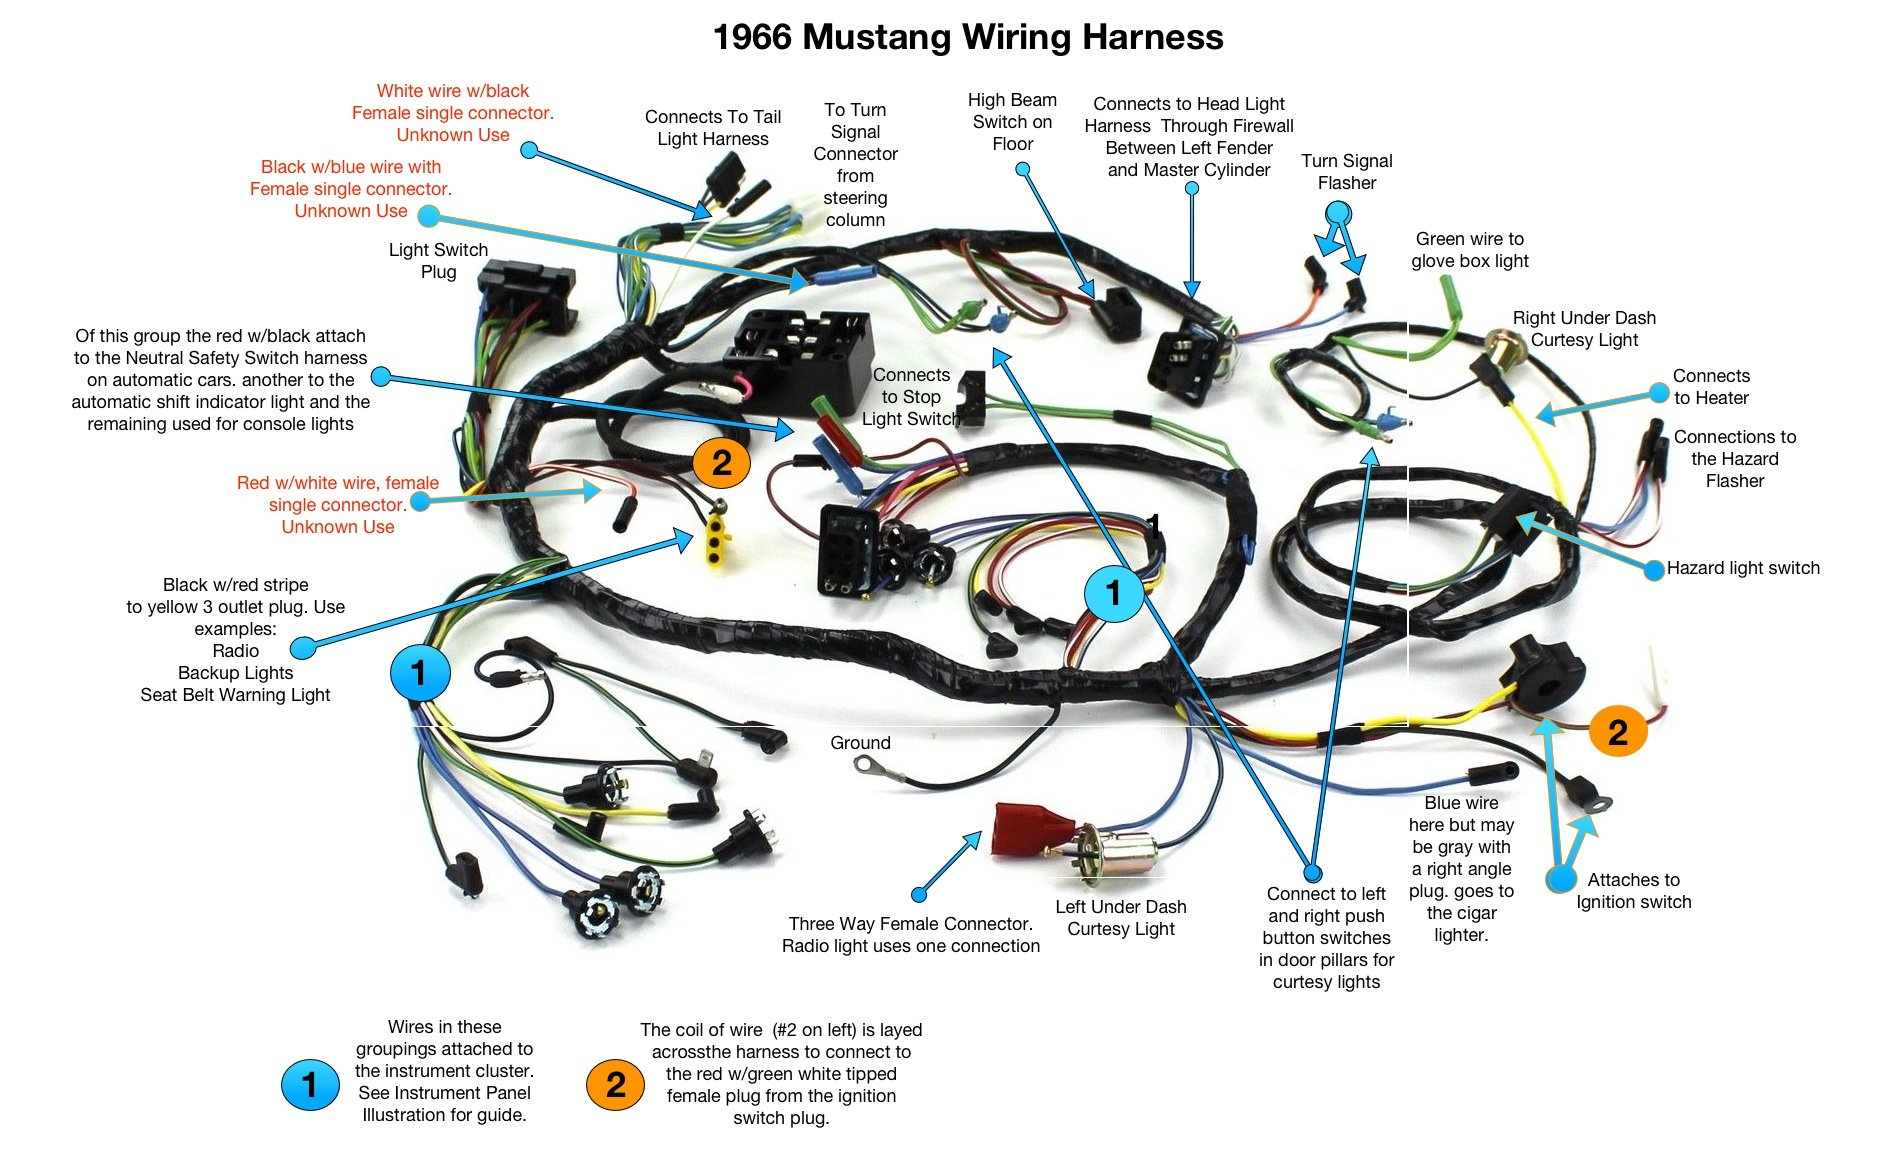 diagram] 1985 mustang wiring harness diagram full version hd quality  harness diagram - infinitipartsdiagram.k-danse.fr  database diagramming tool - k-danse.fr